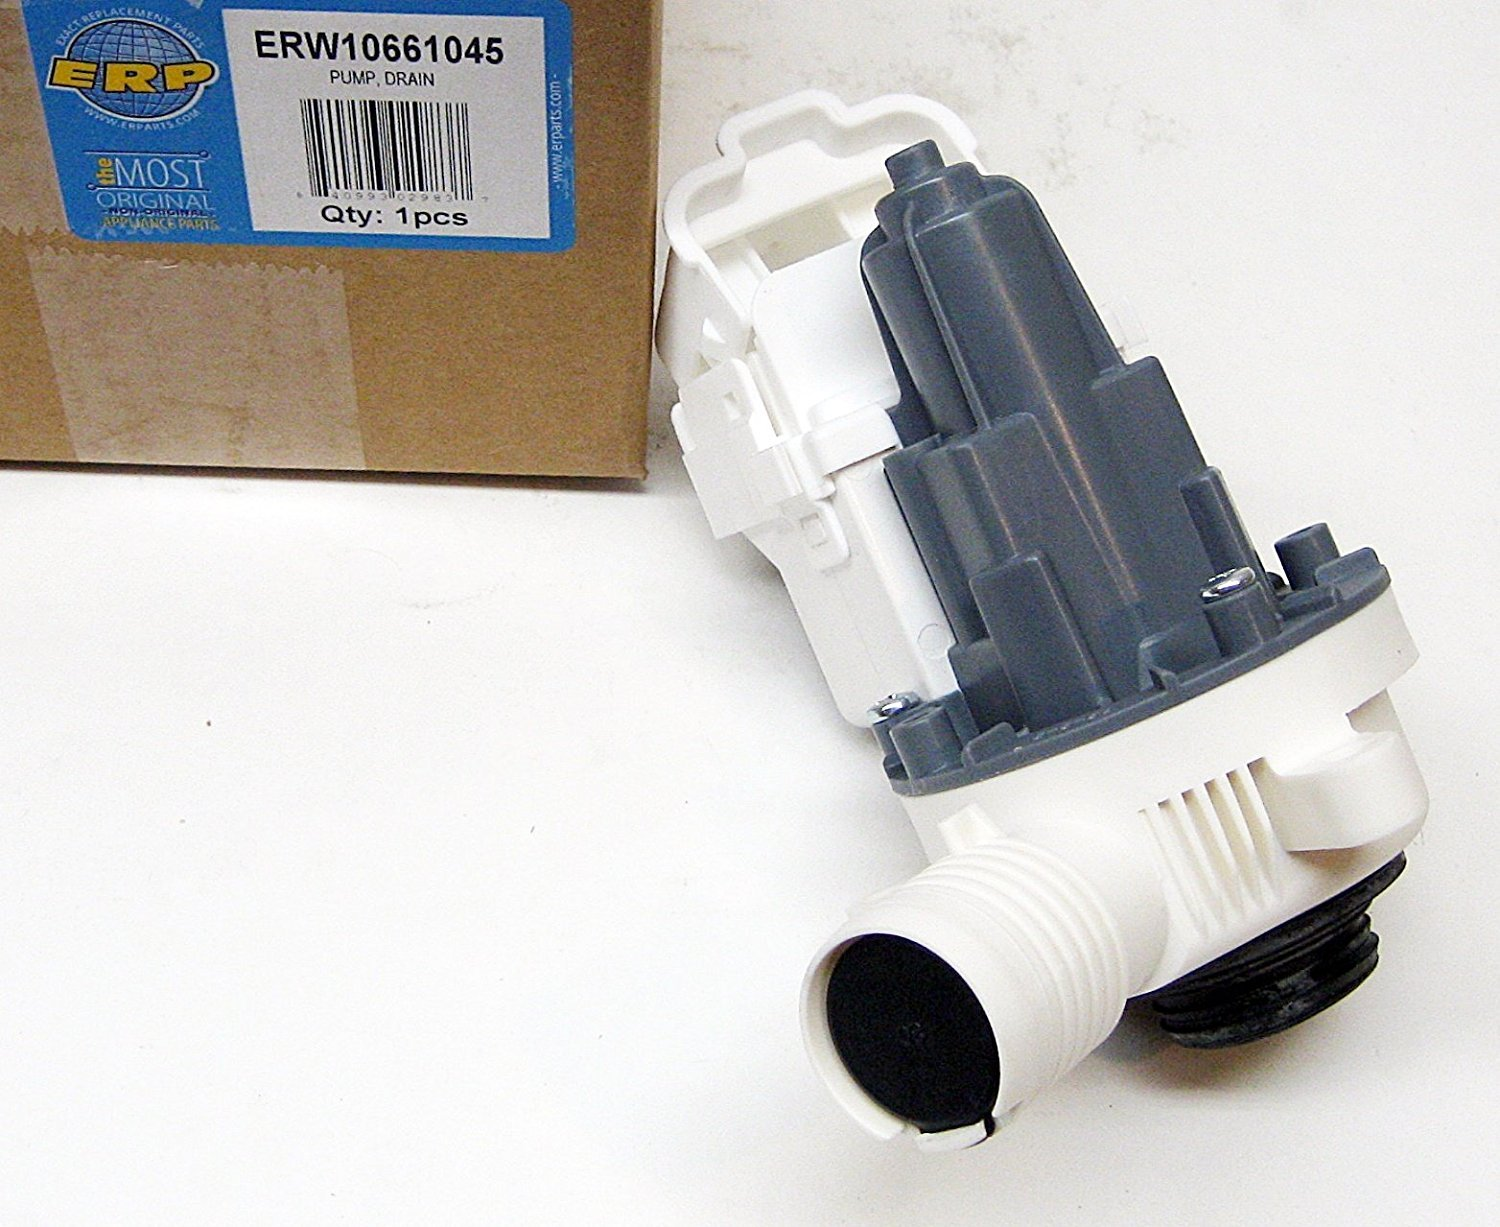 Washing Machine Water Pump for Whirlpool, AP6023670, PS11757016, WPW10661045